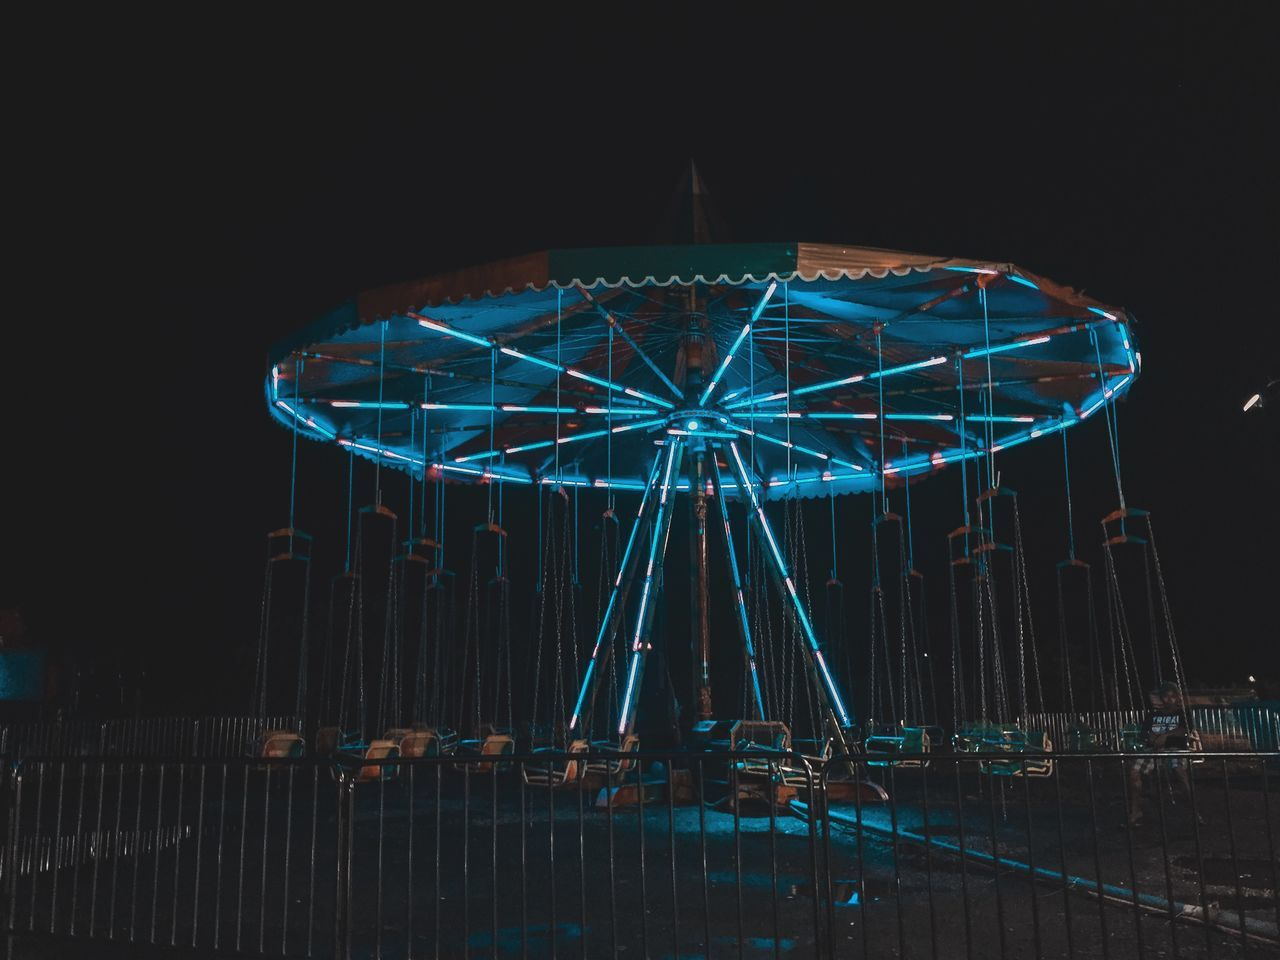 Illuminated carousel against sky at night